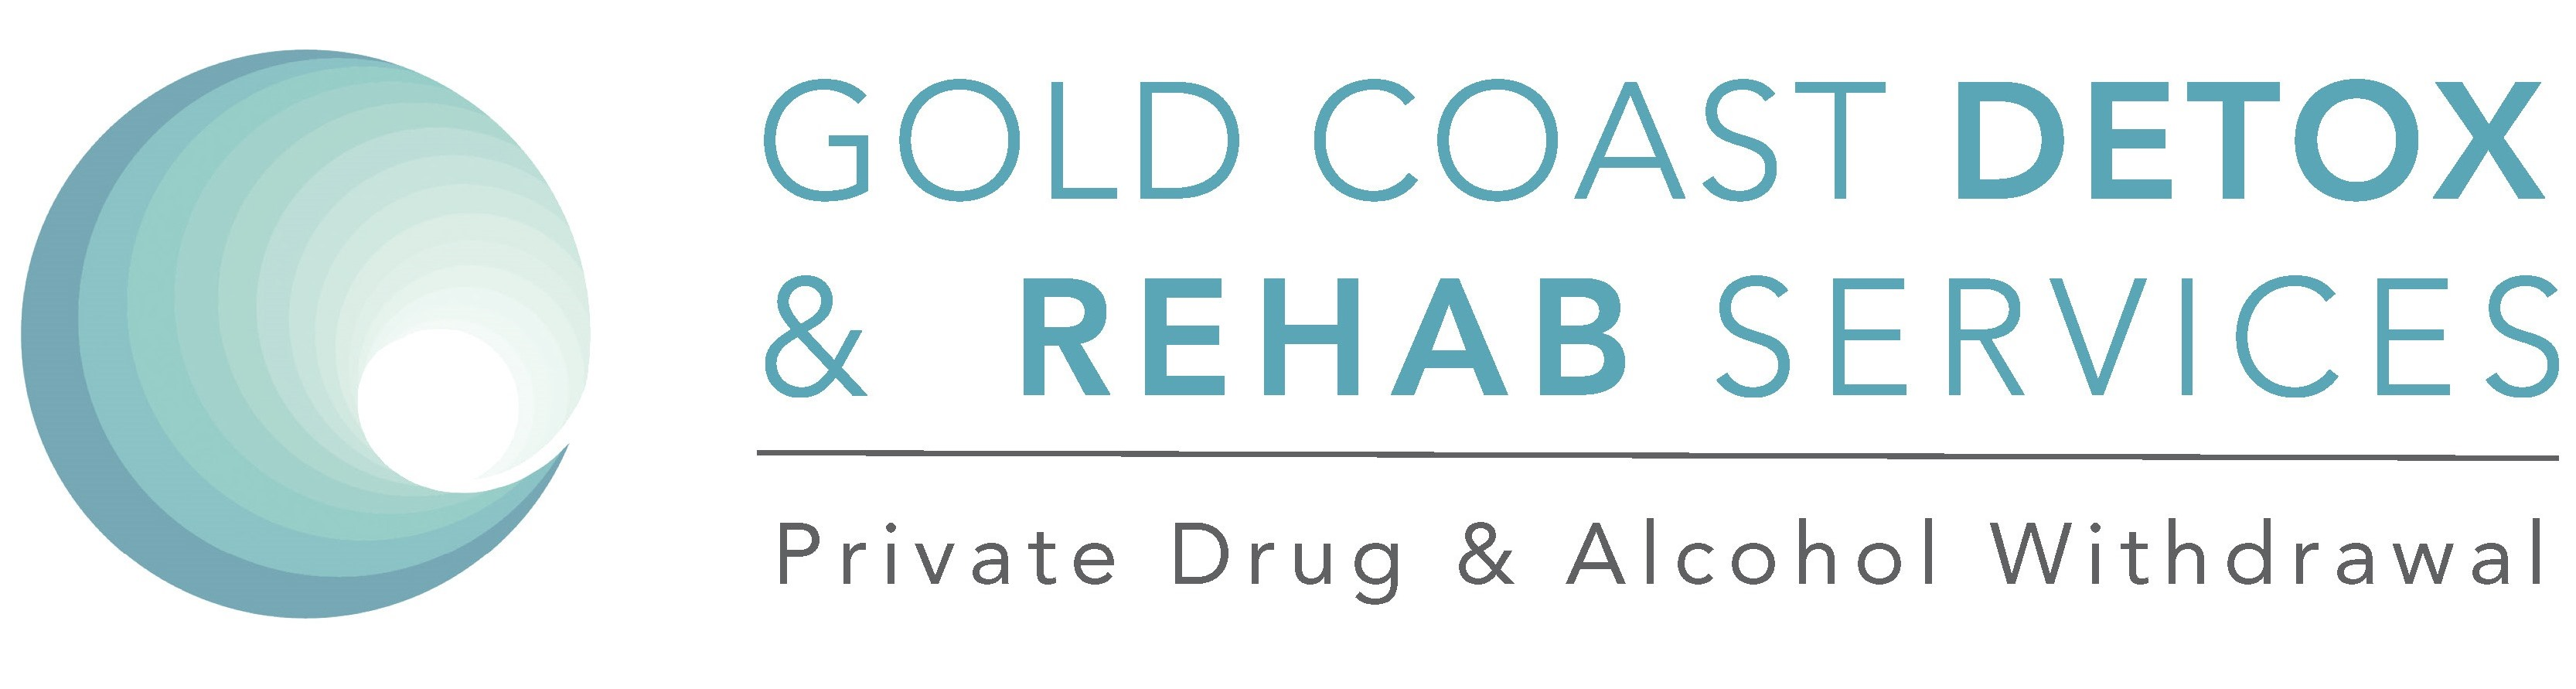 https://goldcoastdetoxandrehab.com/